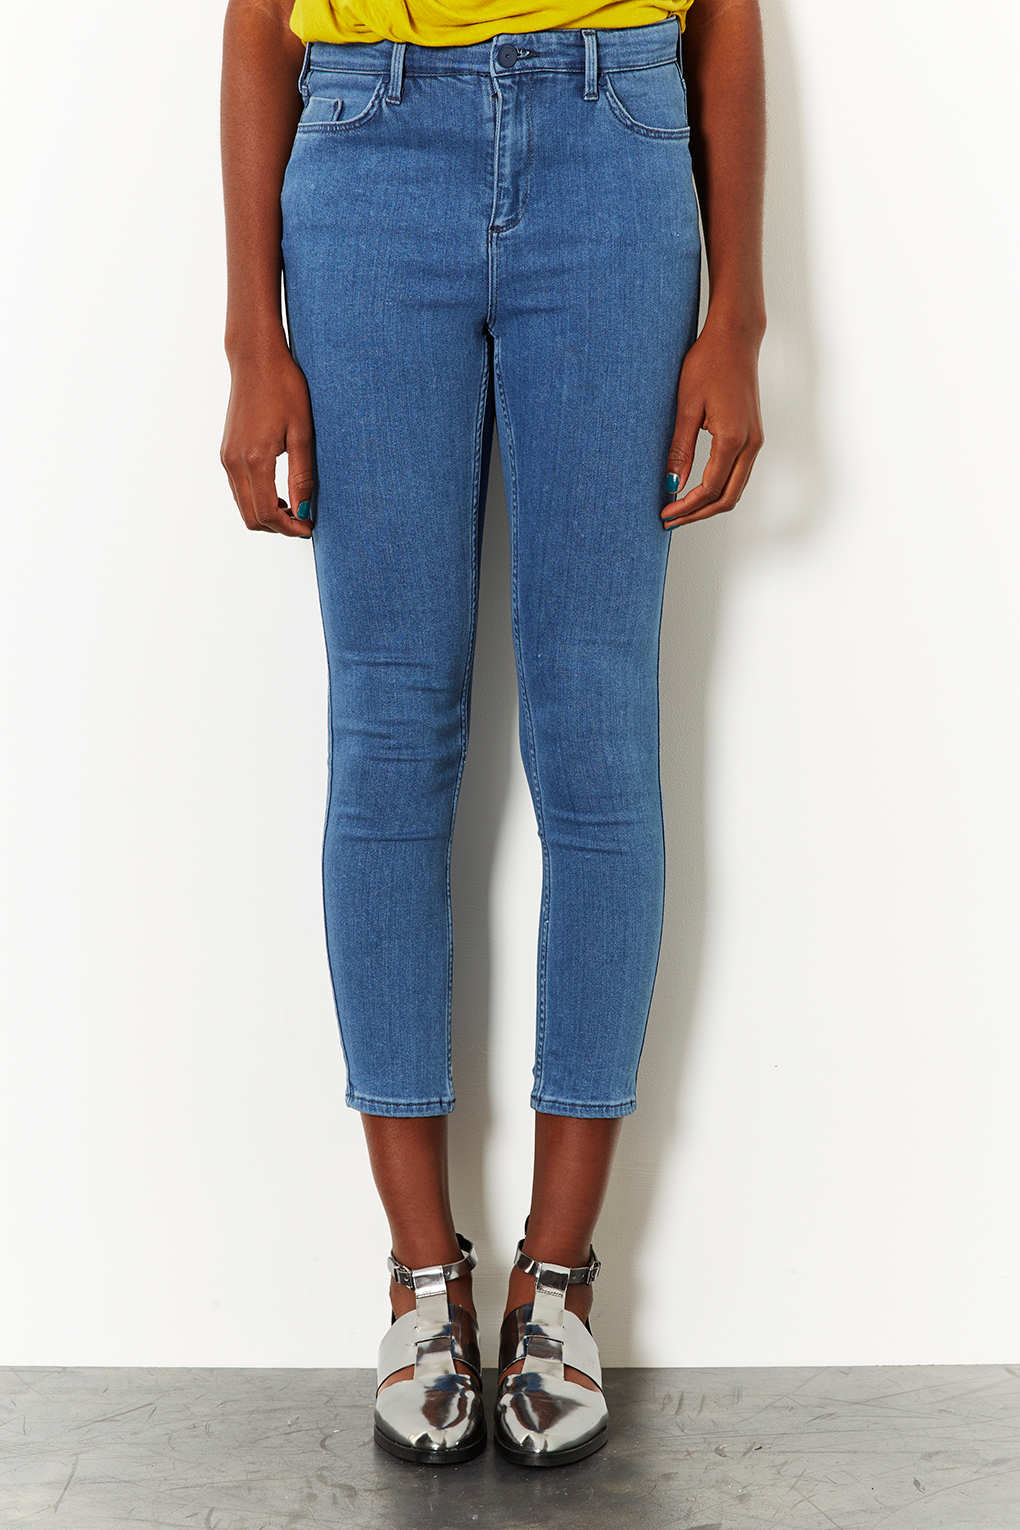 topshop-mid-stone-internet-exclusive-vintage-jamie-high-waisted-skinny-jeans-product-2-13553482-158080585.jpeg